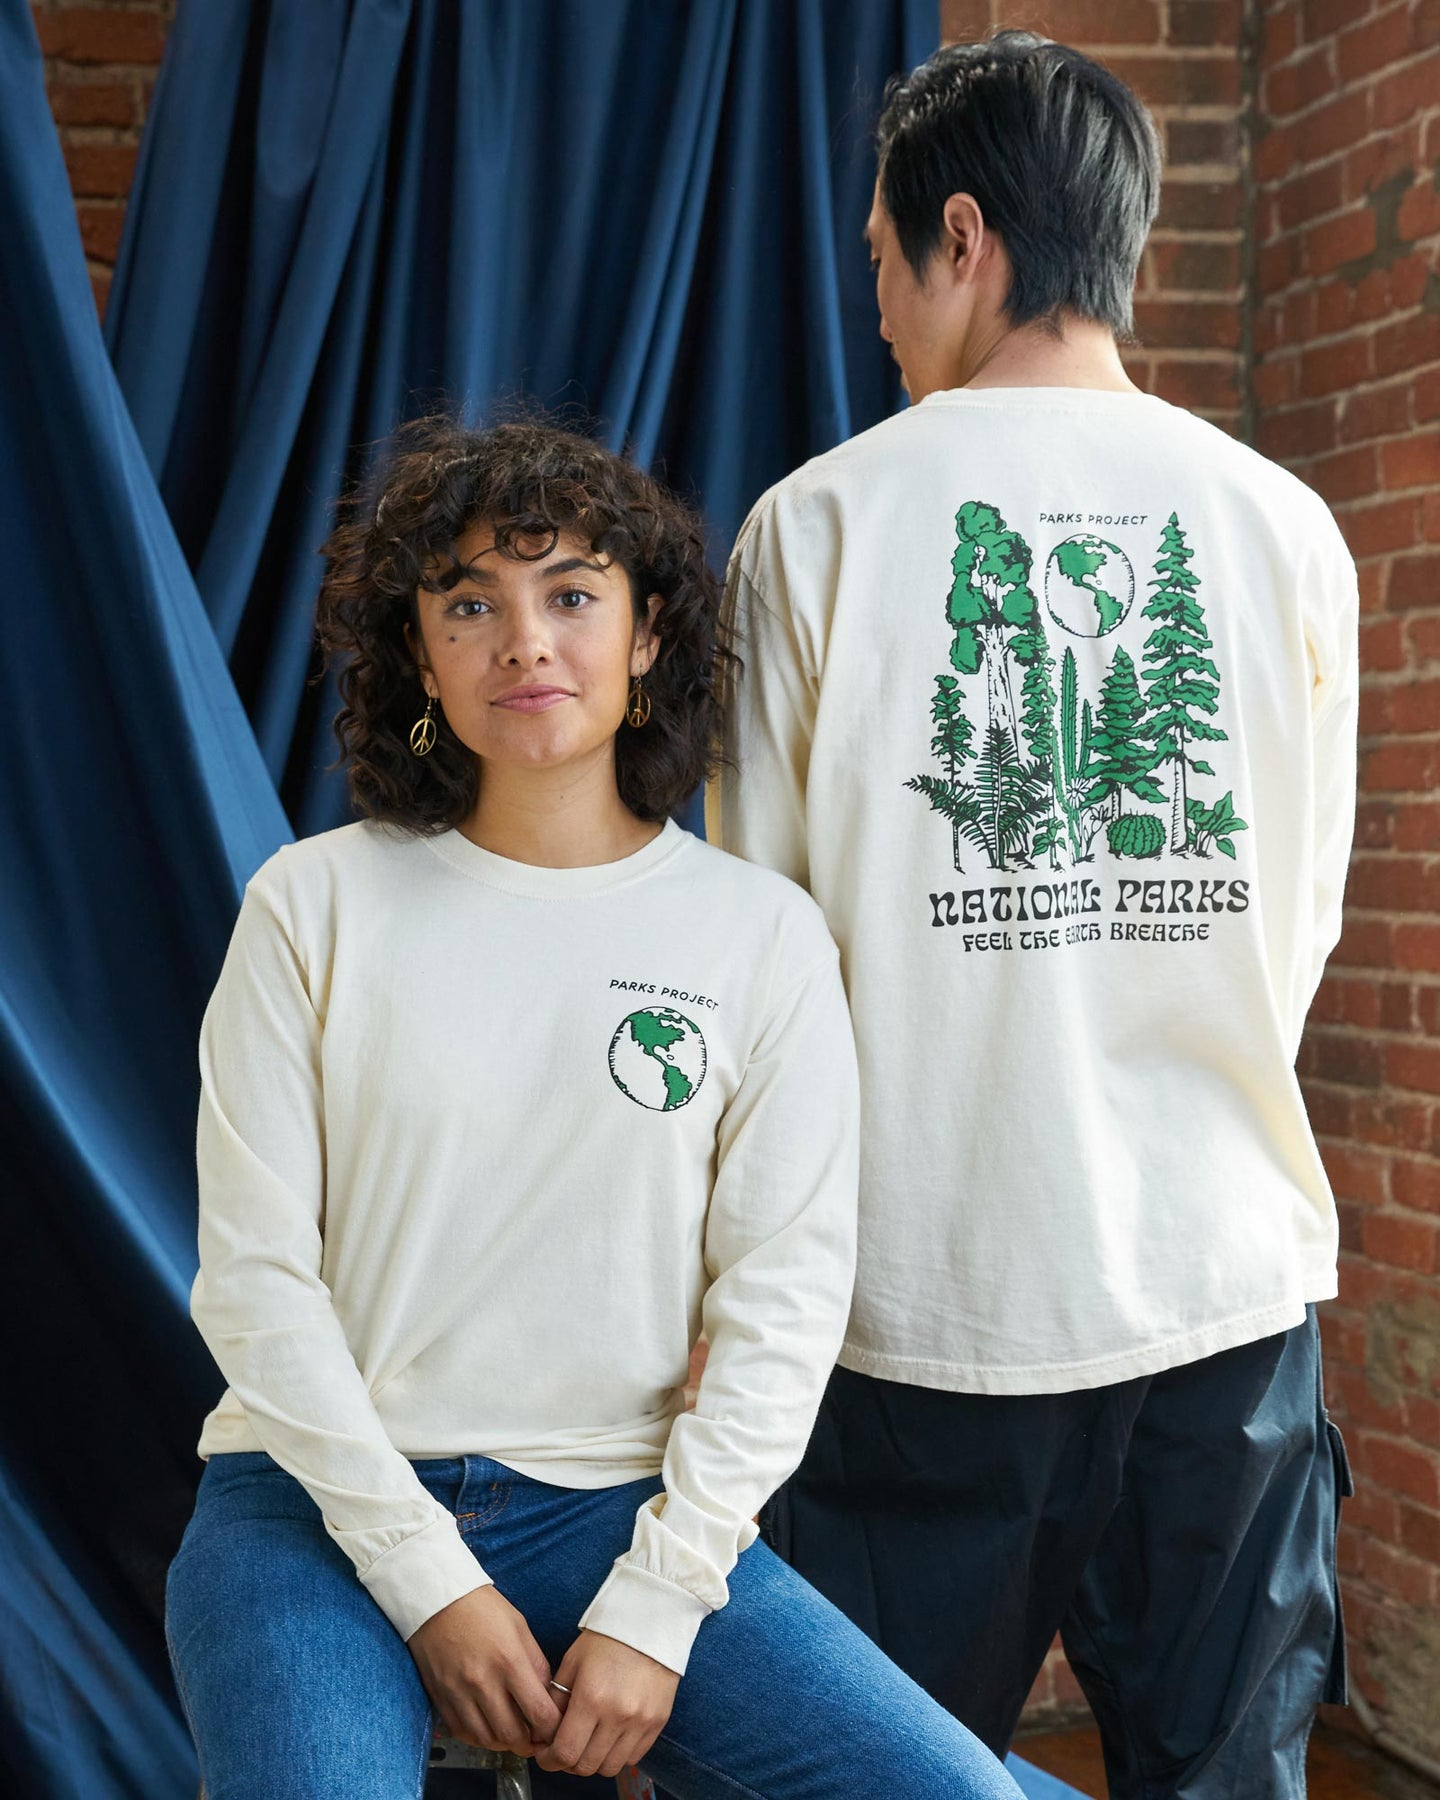 PARKS PROJECT Feel the Earth Breathe Long Sleeve Tee|PP002013